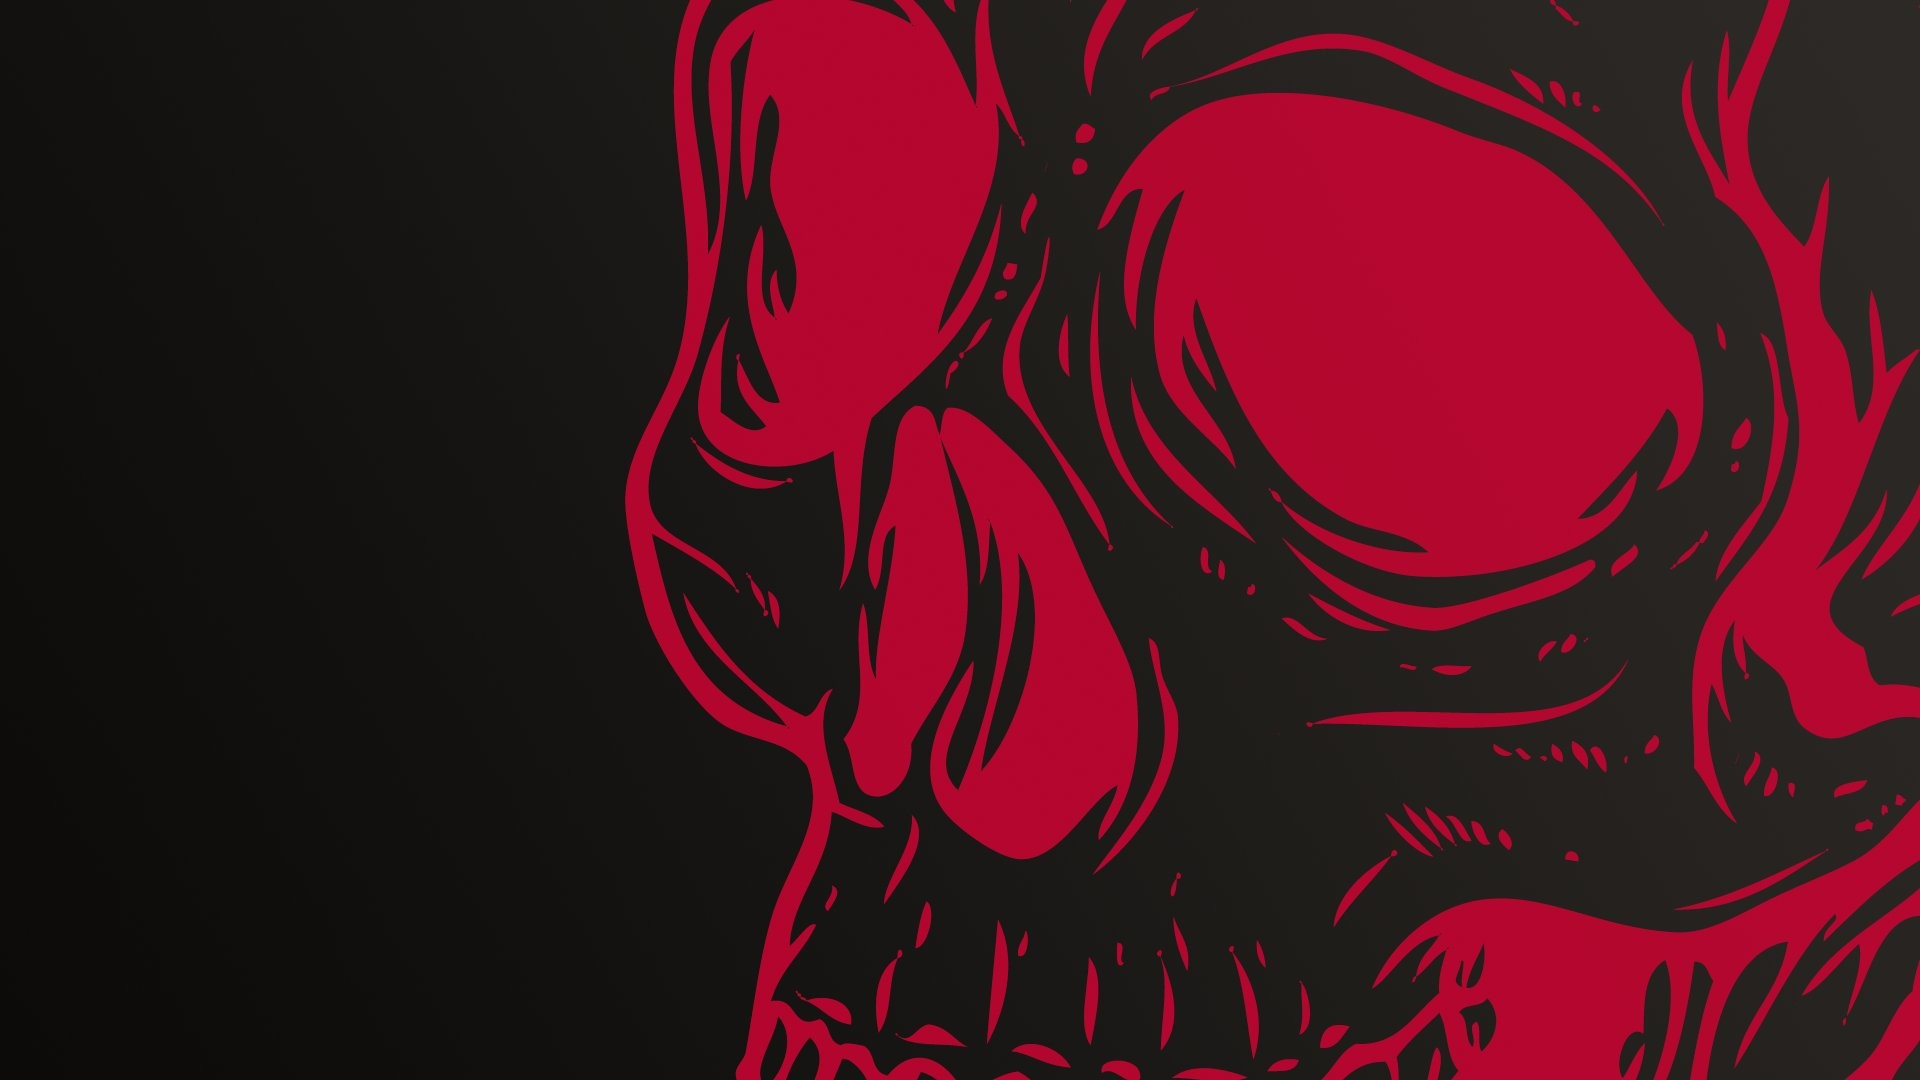 Abstract Skull Wallpapers Wallpaper Red And Black Skull Wallpapers  Wallpapers)